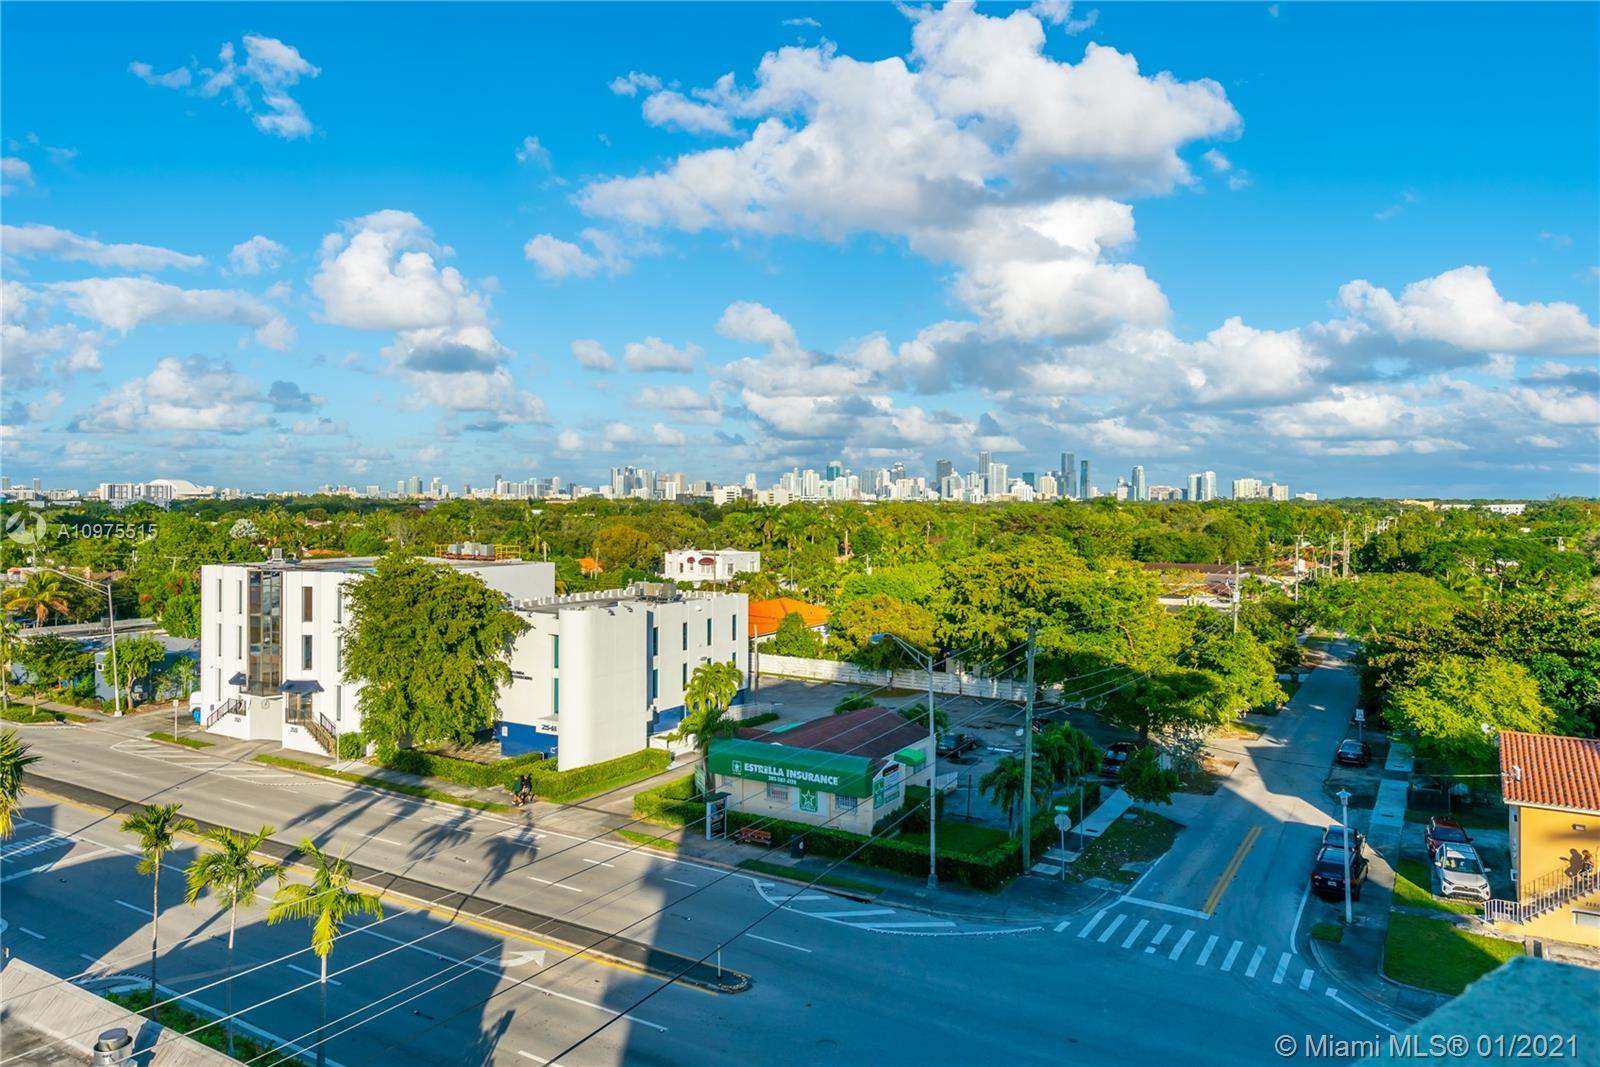 This 1 bedroom, 1.5 bathroom is located in the heart of Miami. It is just minutes away from Coconut grove, Coral Gables, Brickell, Downtown, as well as the metro rail station. This unit is equipped with wood flooring, impact sliding glass doors, granite kitchen counter tops along with stainless steel appliances. Both washer and dryer are included in the unit. The wrap around balcony offers wonderful skyline views from both master bedroom and living room. Amenities include pool, gym and party room with secure entry to the lobby. The unit comes with one covered parking space in secured garage.